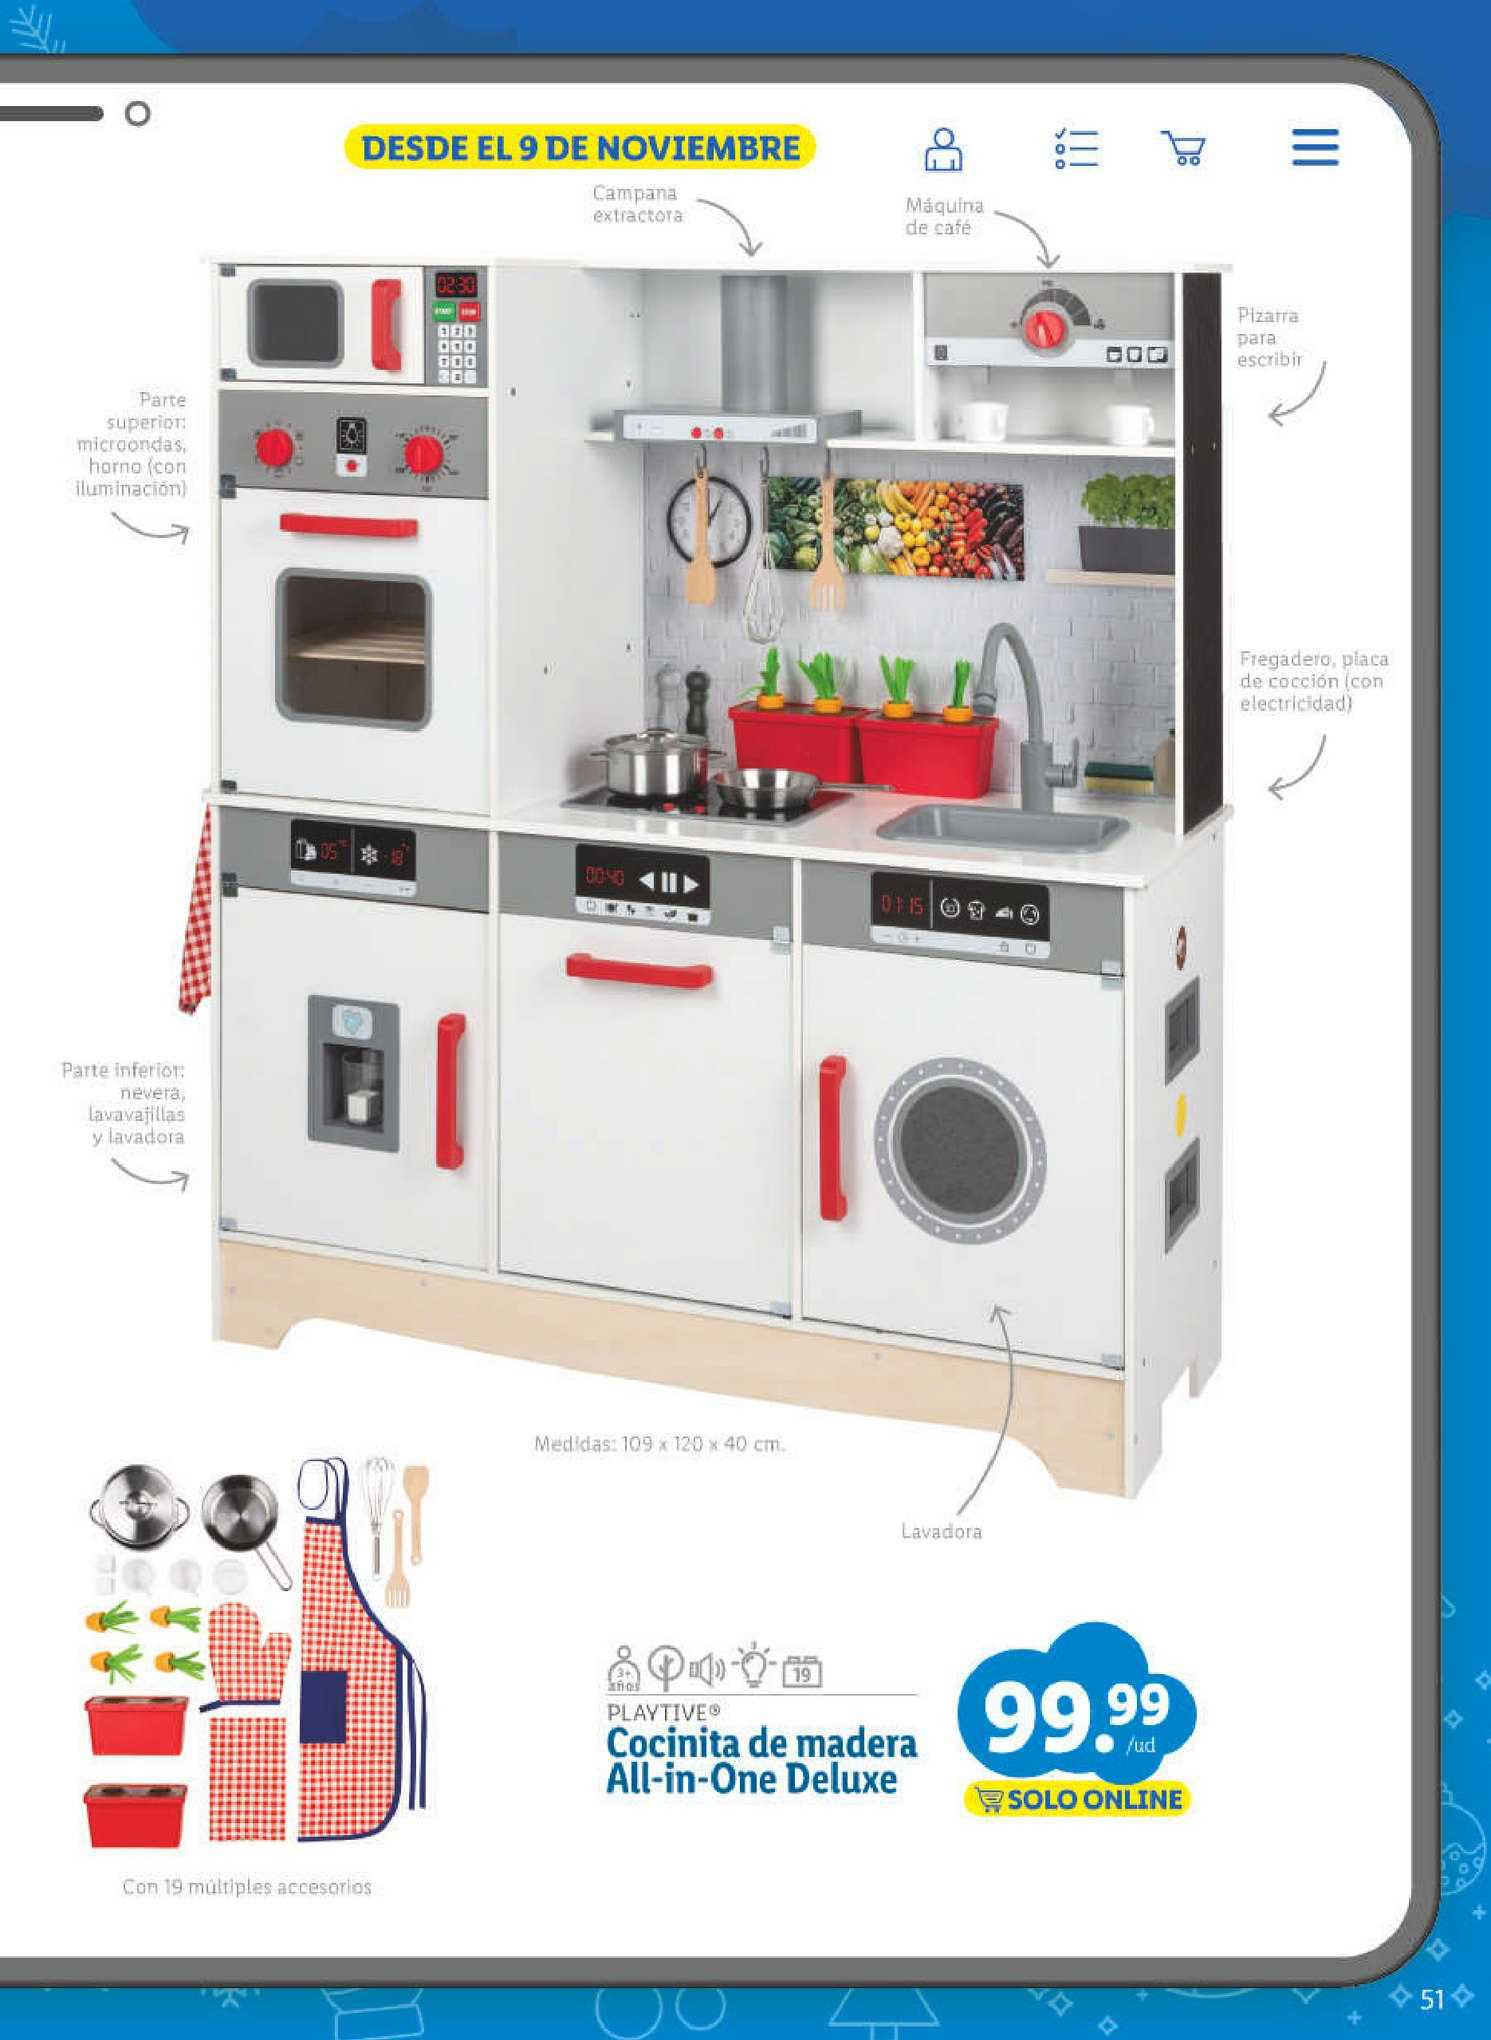 LIDL Playtive Cocinita De Madera All-in-one Deluxe